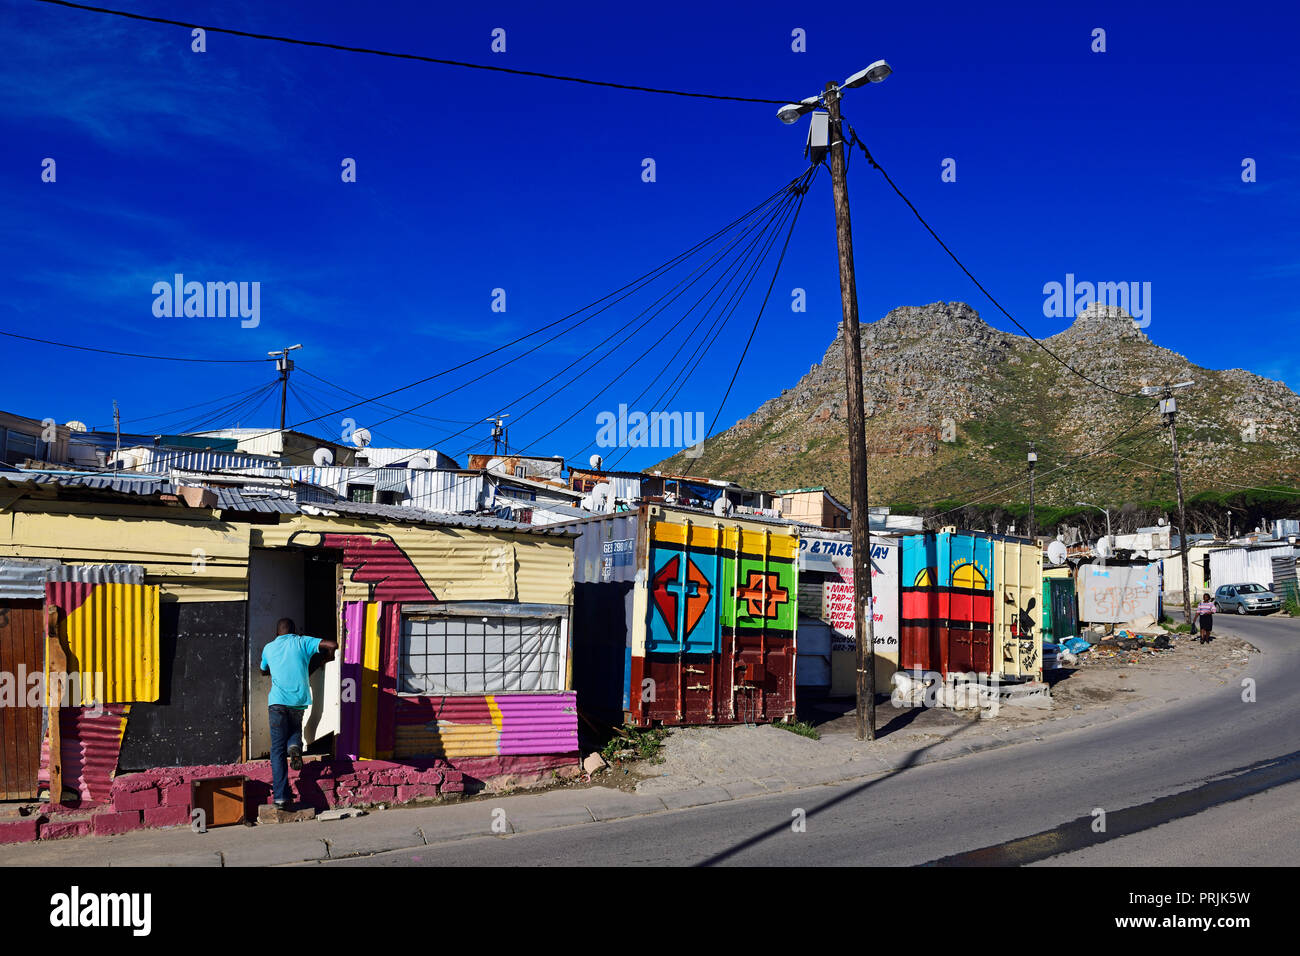 Imizamo Yethu Township, Hout Bay, Cape Town, Western Cape, South Africa Stock Photo